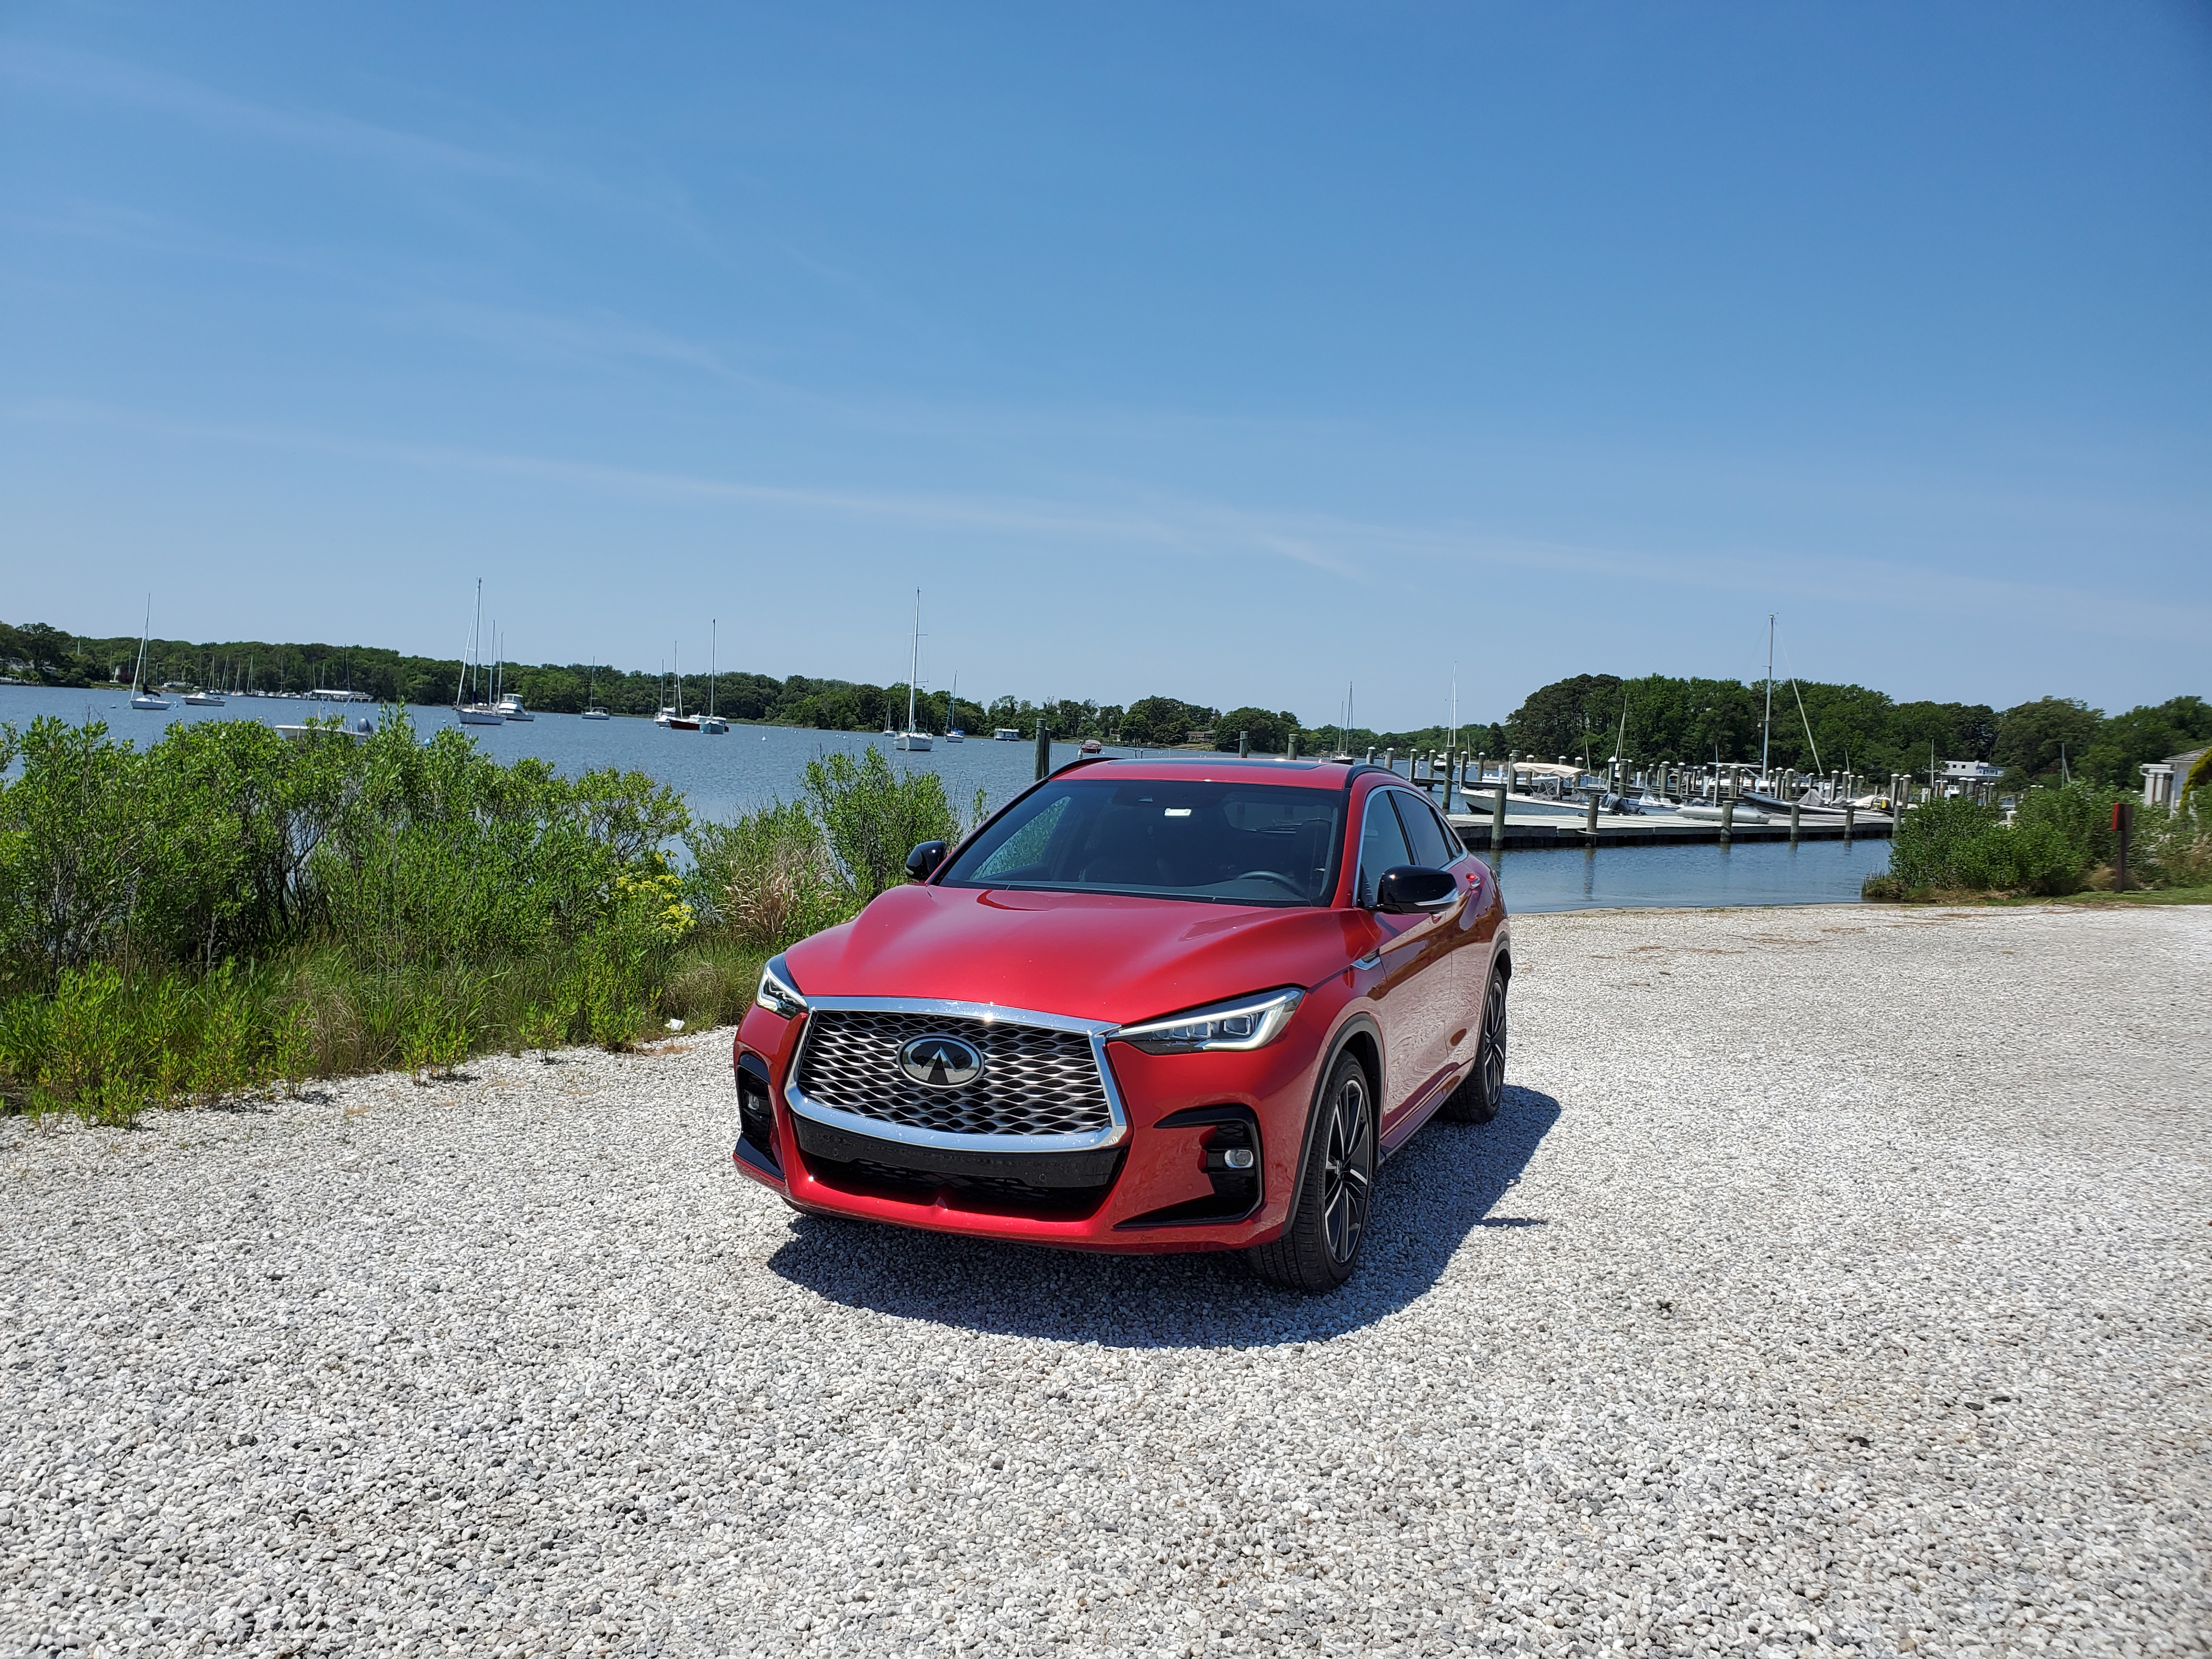 Infiniti QX55 Front on with boats in the background